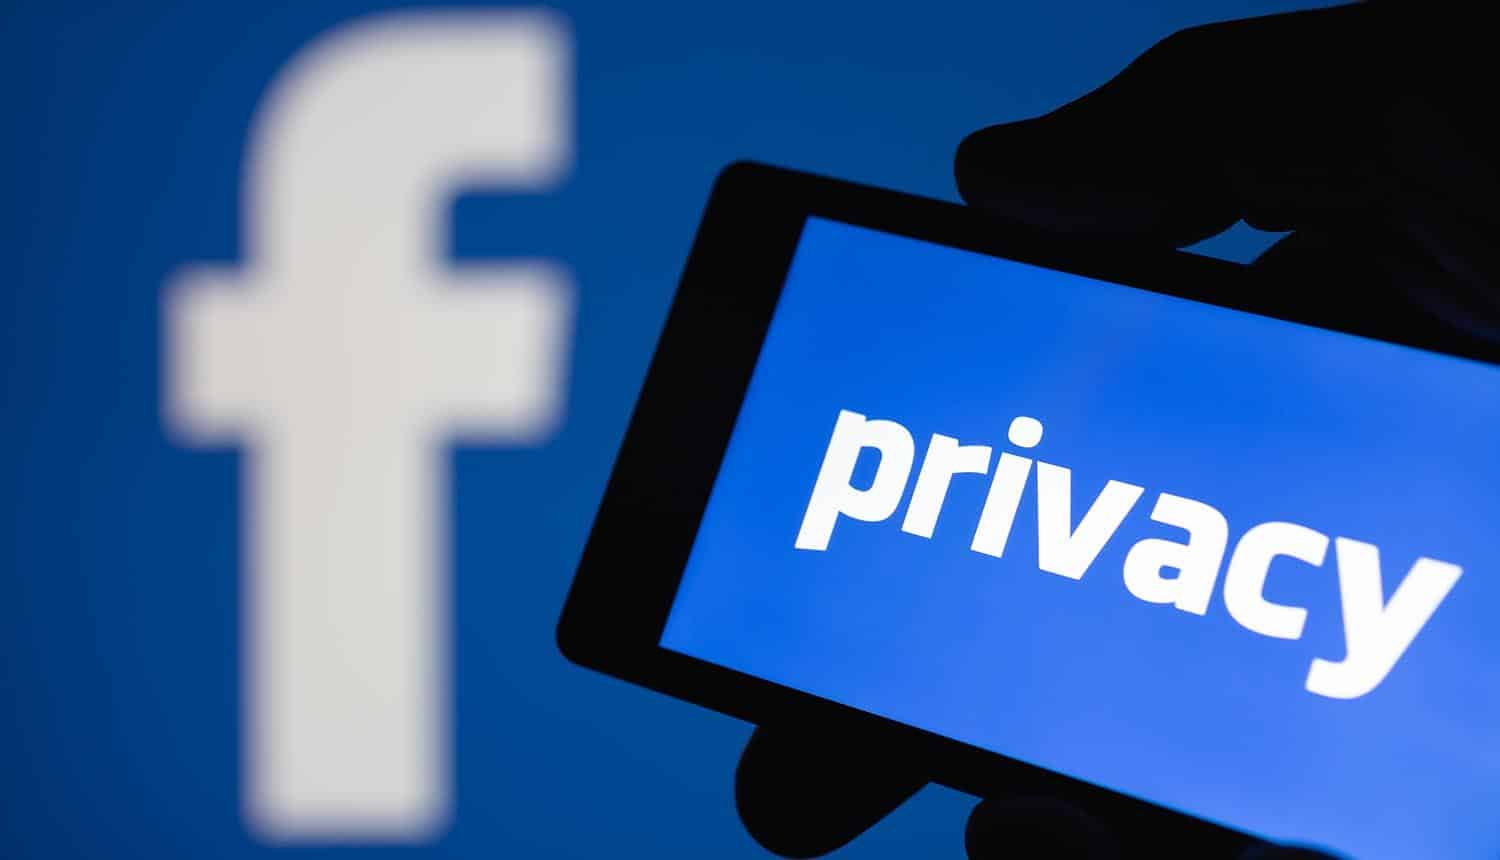 another facebook privacy breach, this one involving comic internet privacy tips for staying safe and secure online